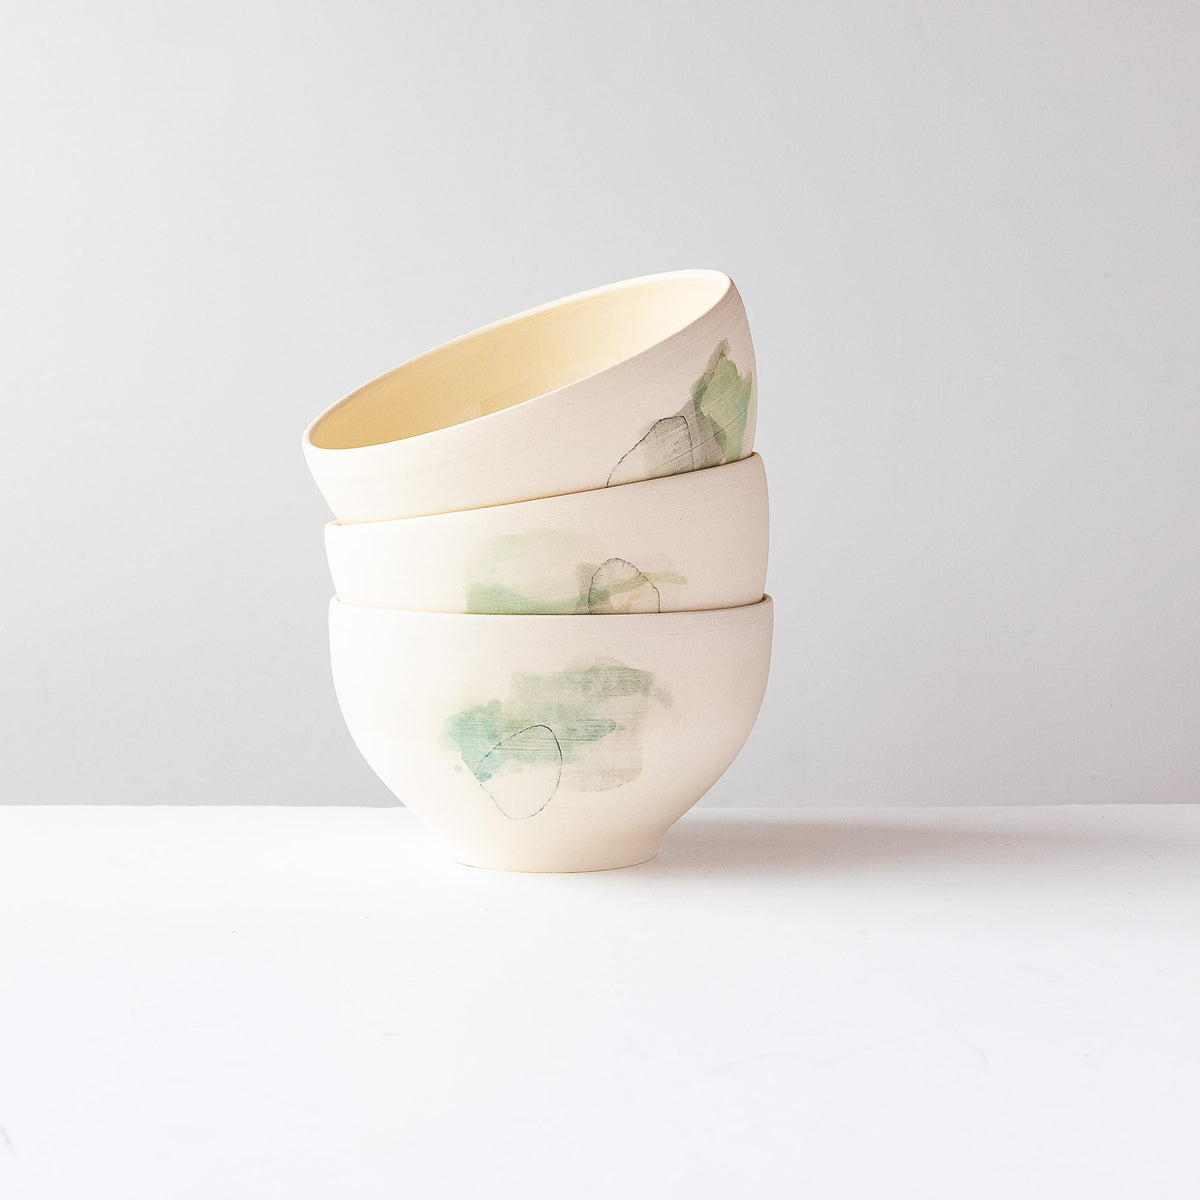 Green Pattern - Three Large Hand Painted White Porcelain Bowls - Sold by Chic & Basta